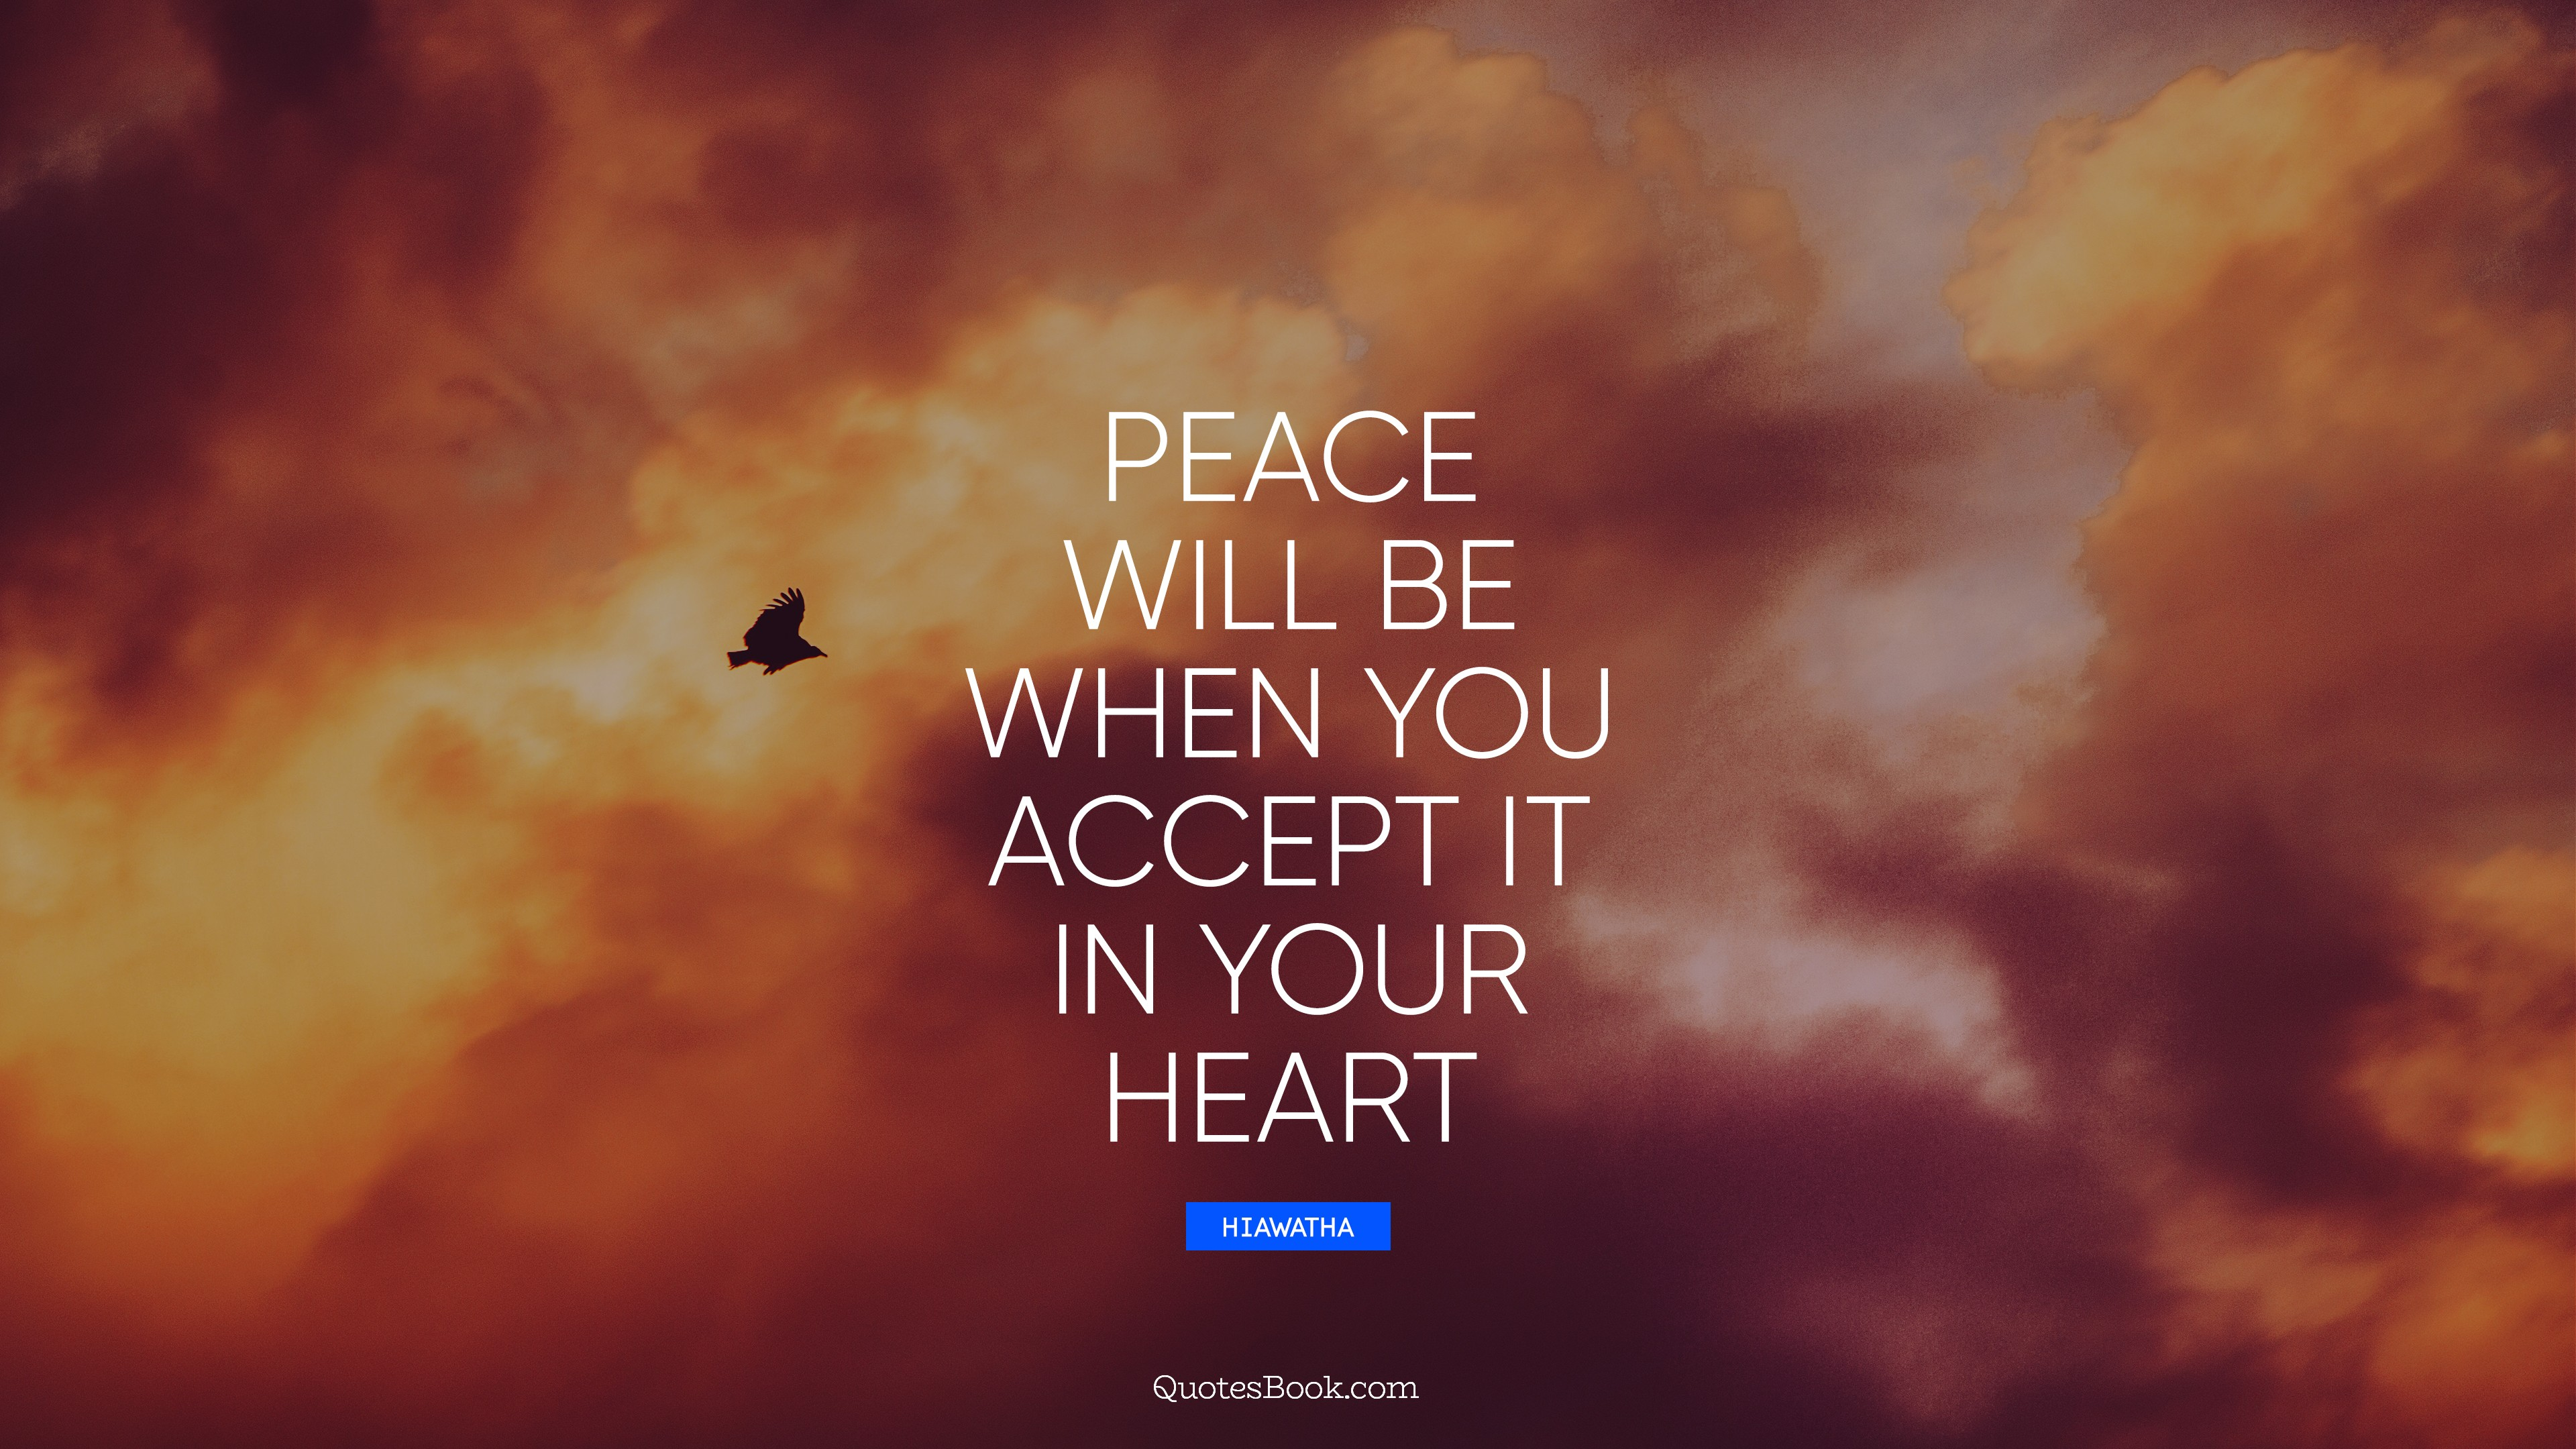 Peace Will Be When You Accept It In Your Heart Quote By Hiawatha